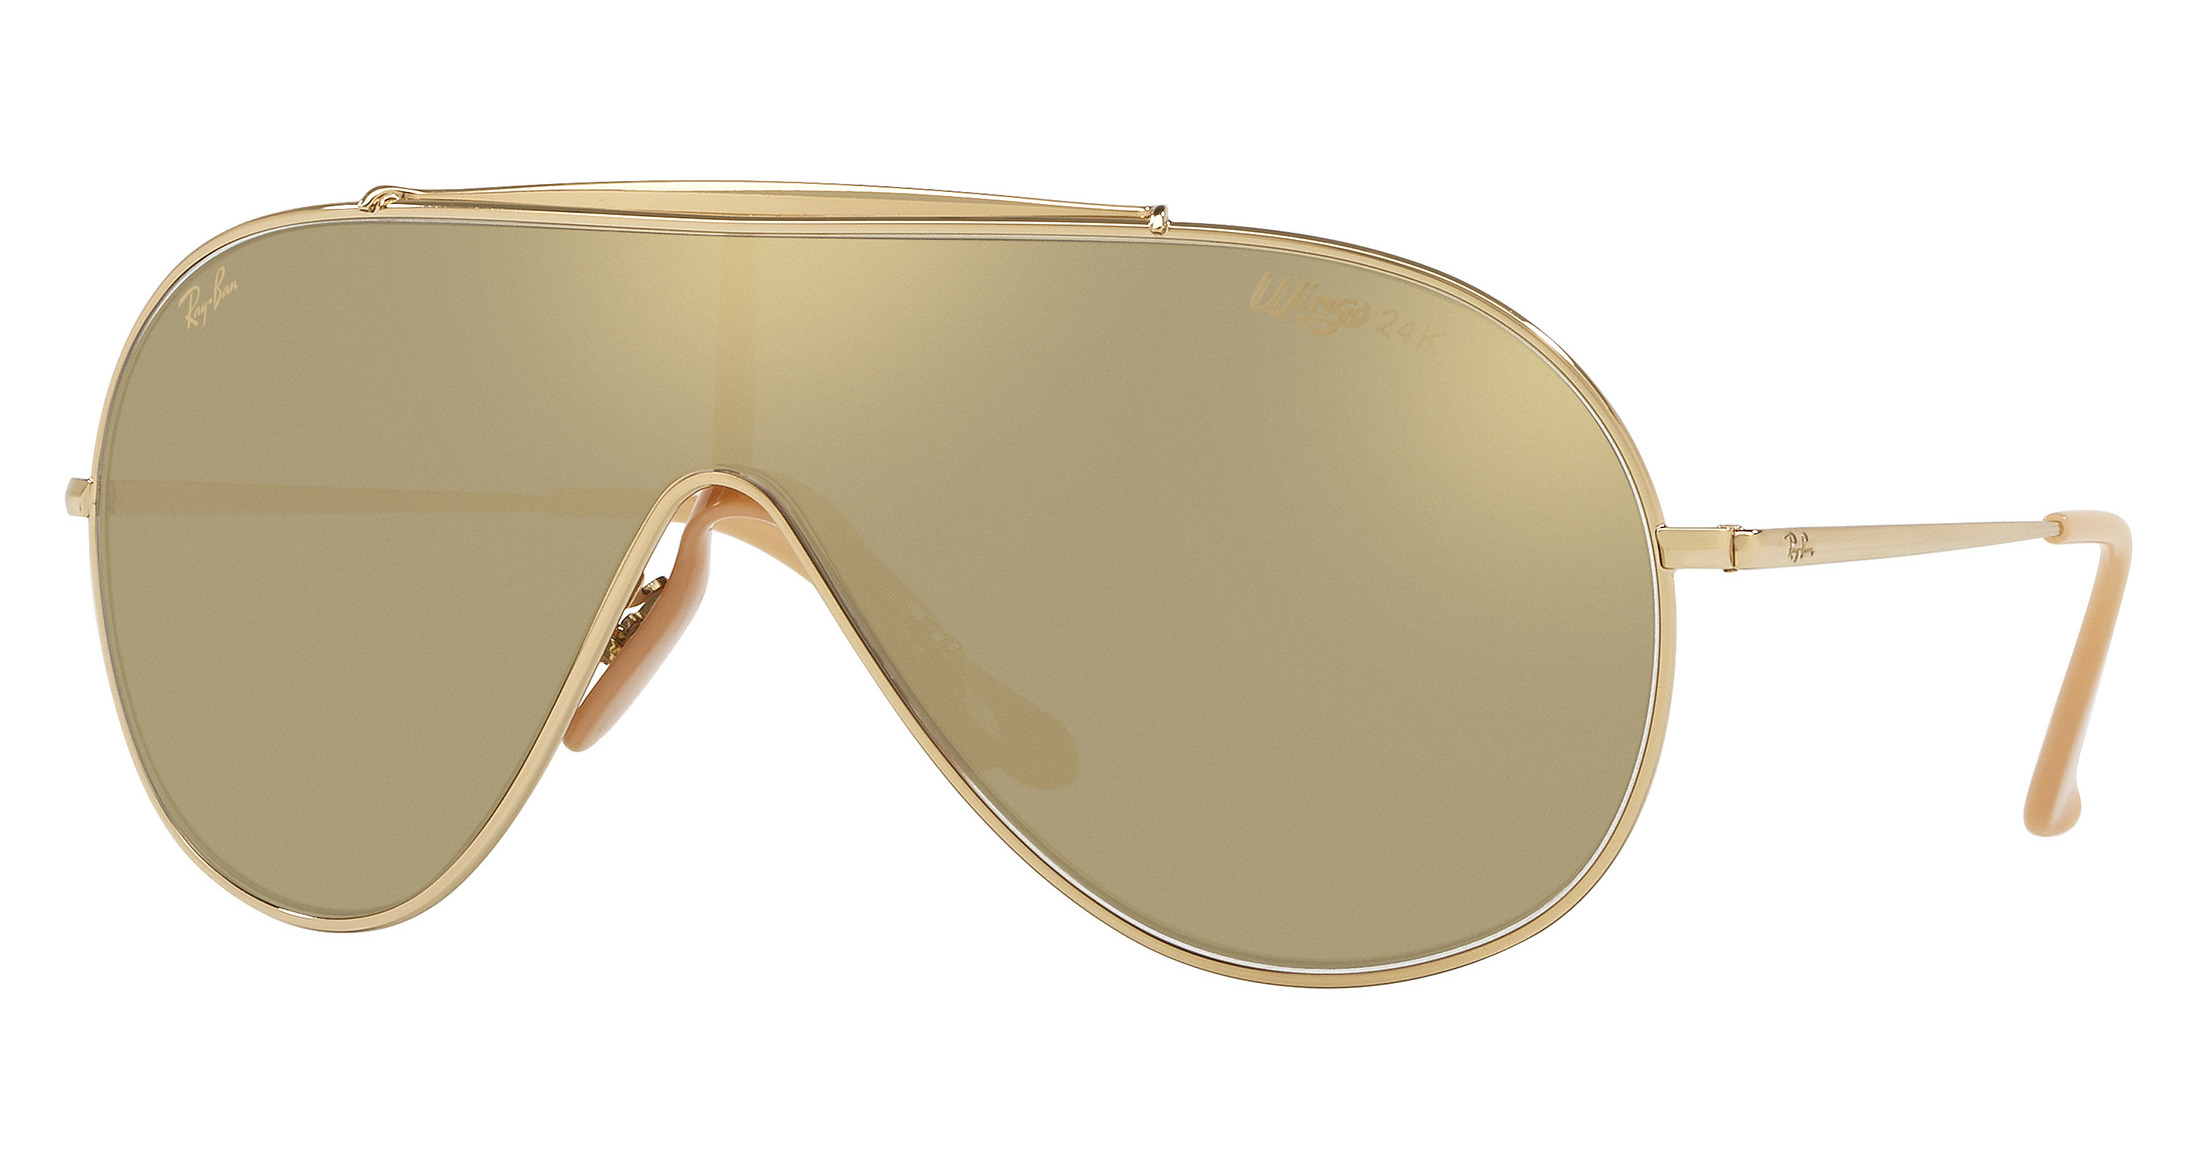 87df09bac14 Ray-Ban unveils 24k gold-plated aviators for a whopping  500 -